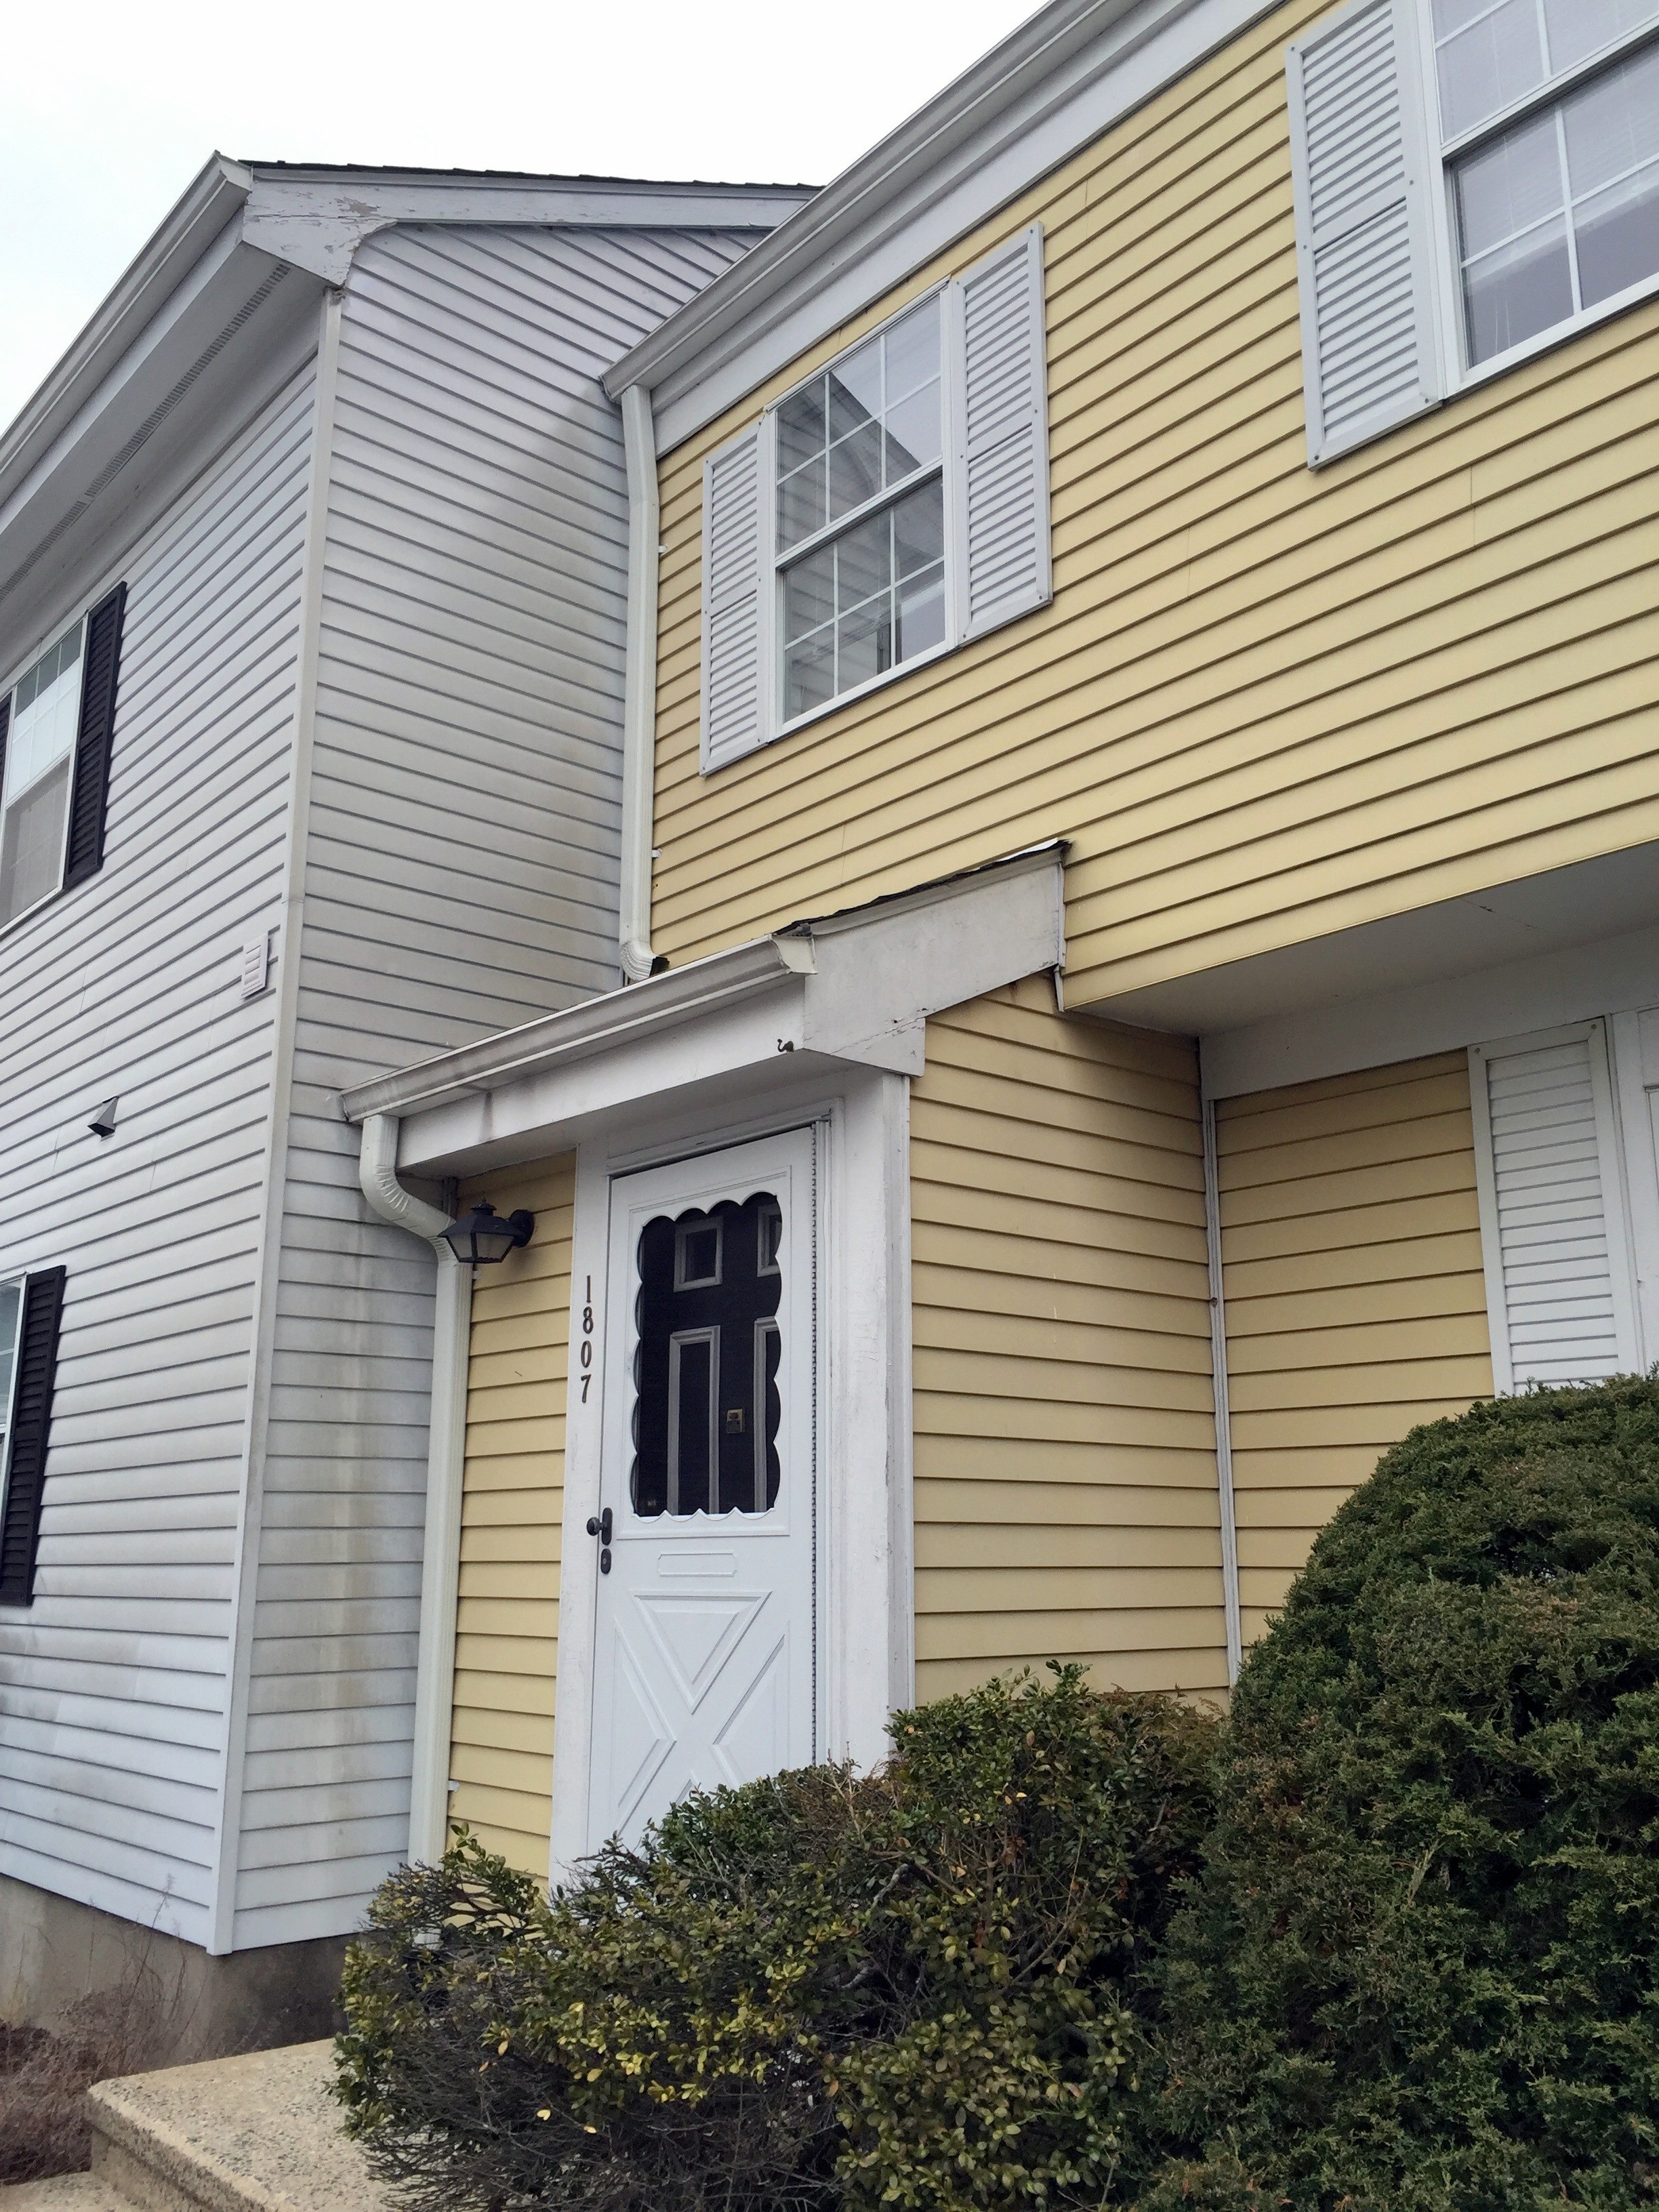 81 park avenue 1807 danbury ct 06810 2 bedroom - 2 bedroom apartments for rent in danbury ct ...